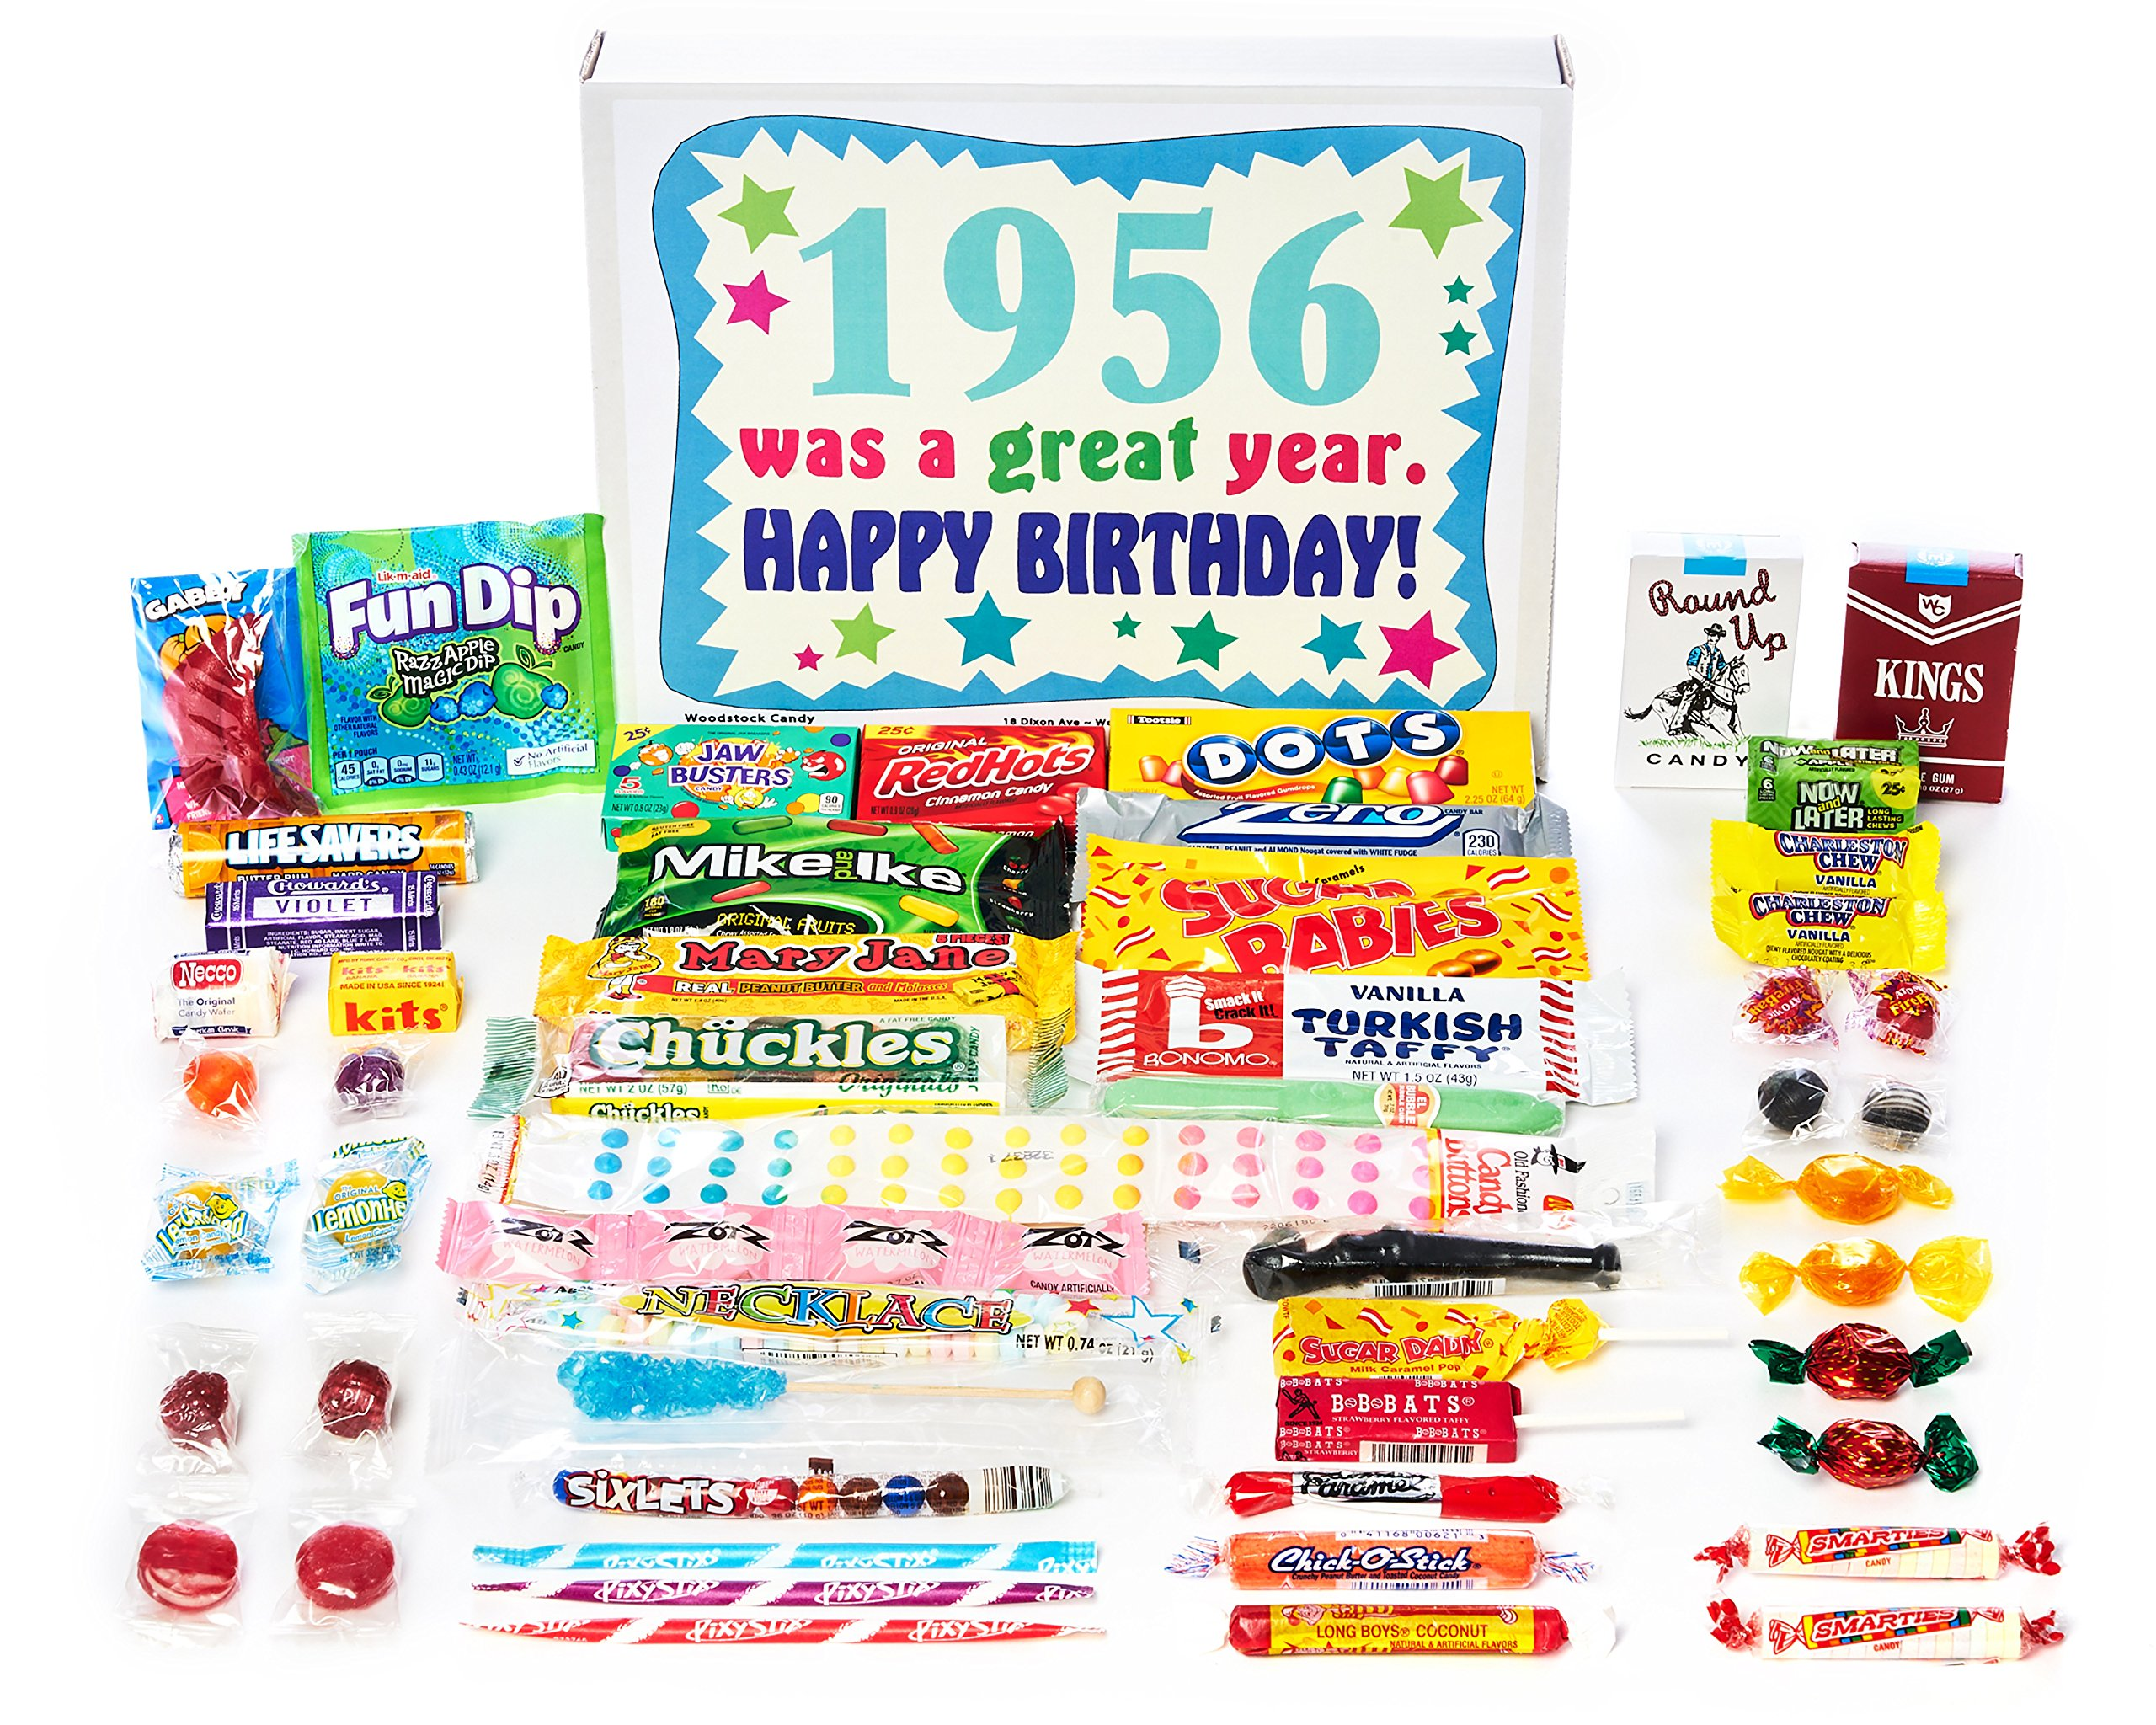 Woodstock Candy ~ 1956 63rd Birthday Gift Box of Nostalgic Retro Candy from Childhood for 63 Year Old Man or Woman Born 1956